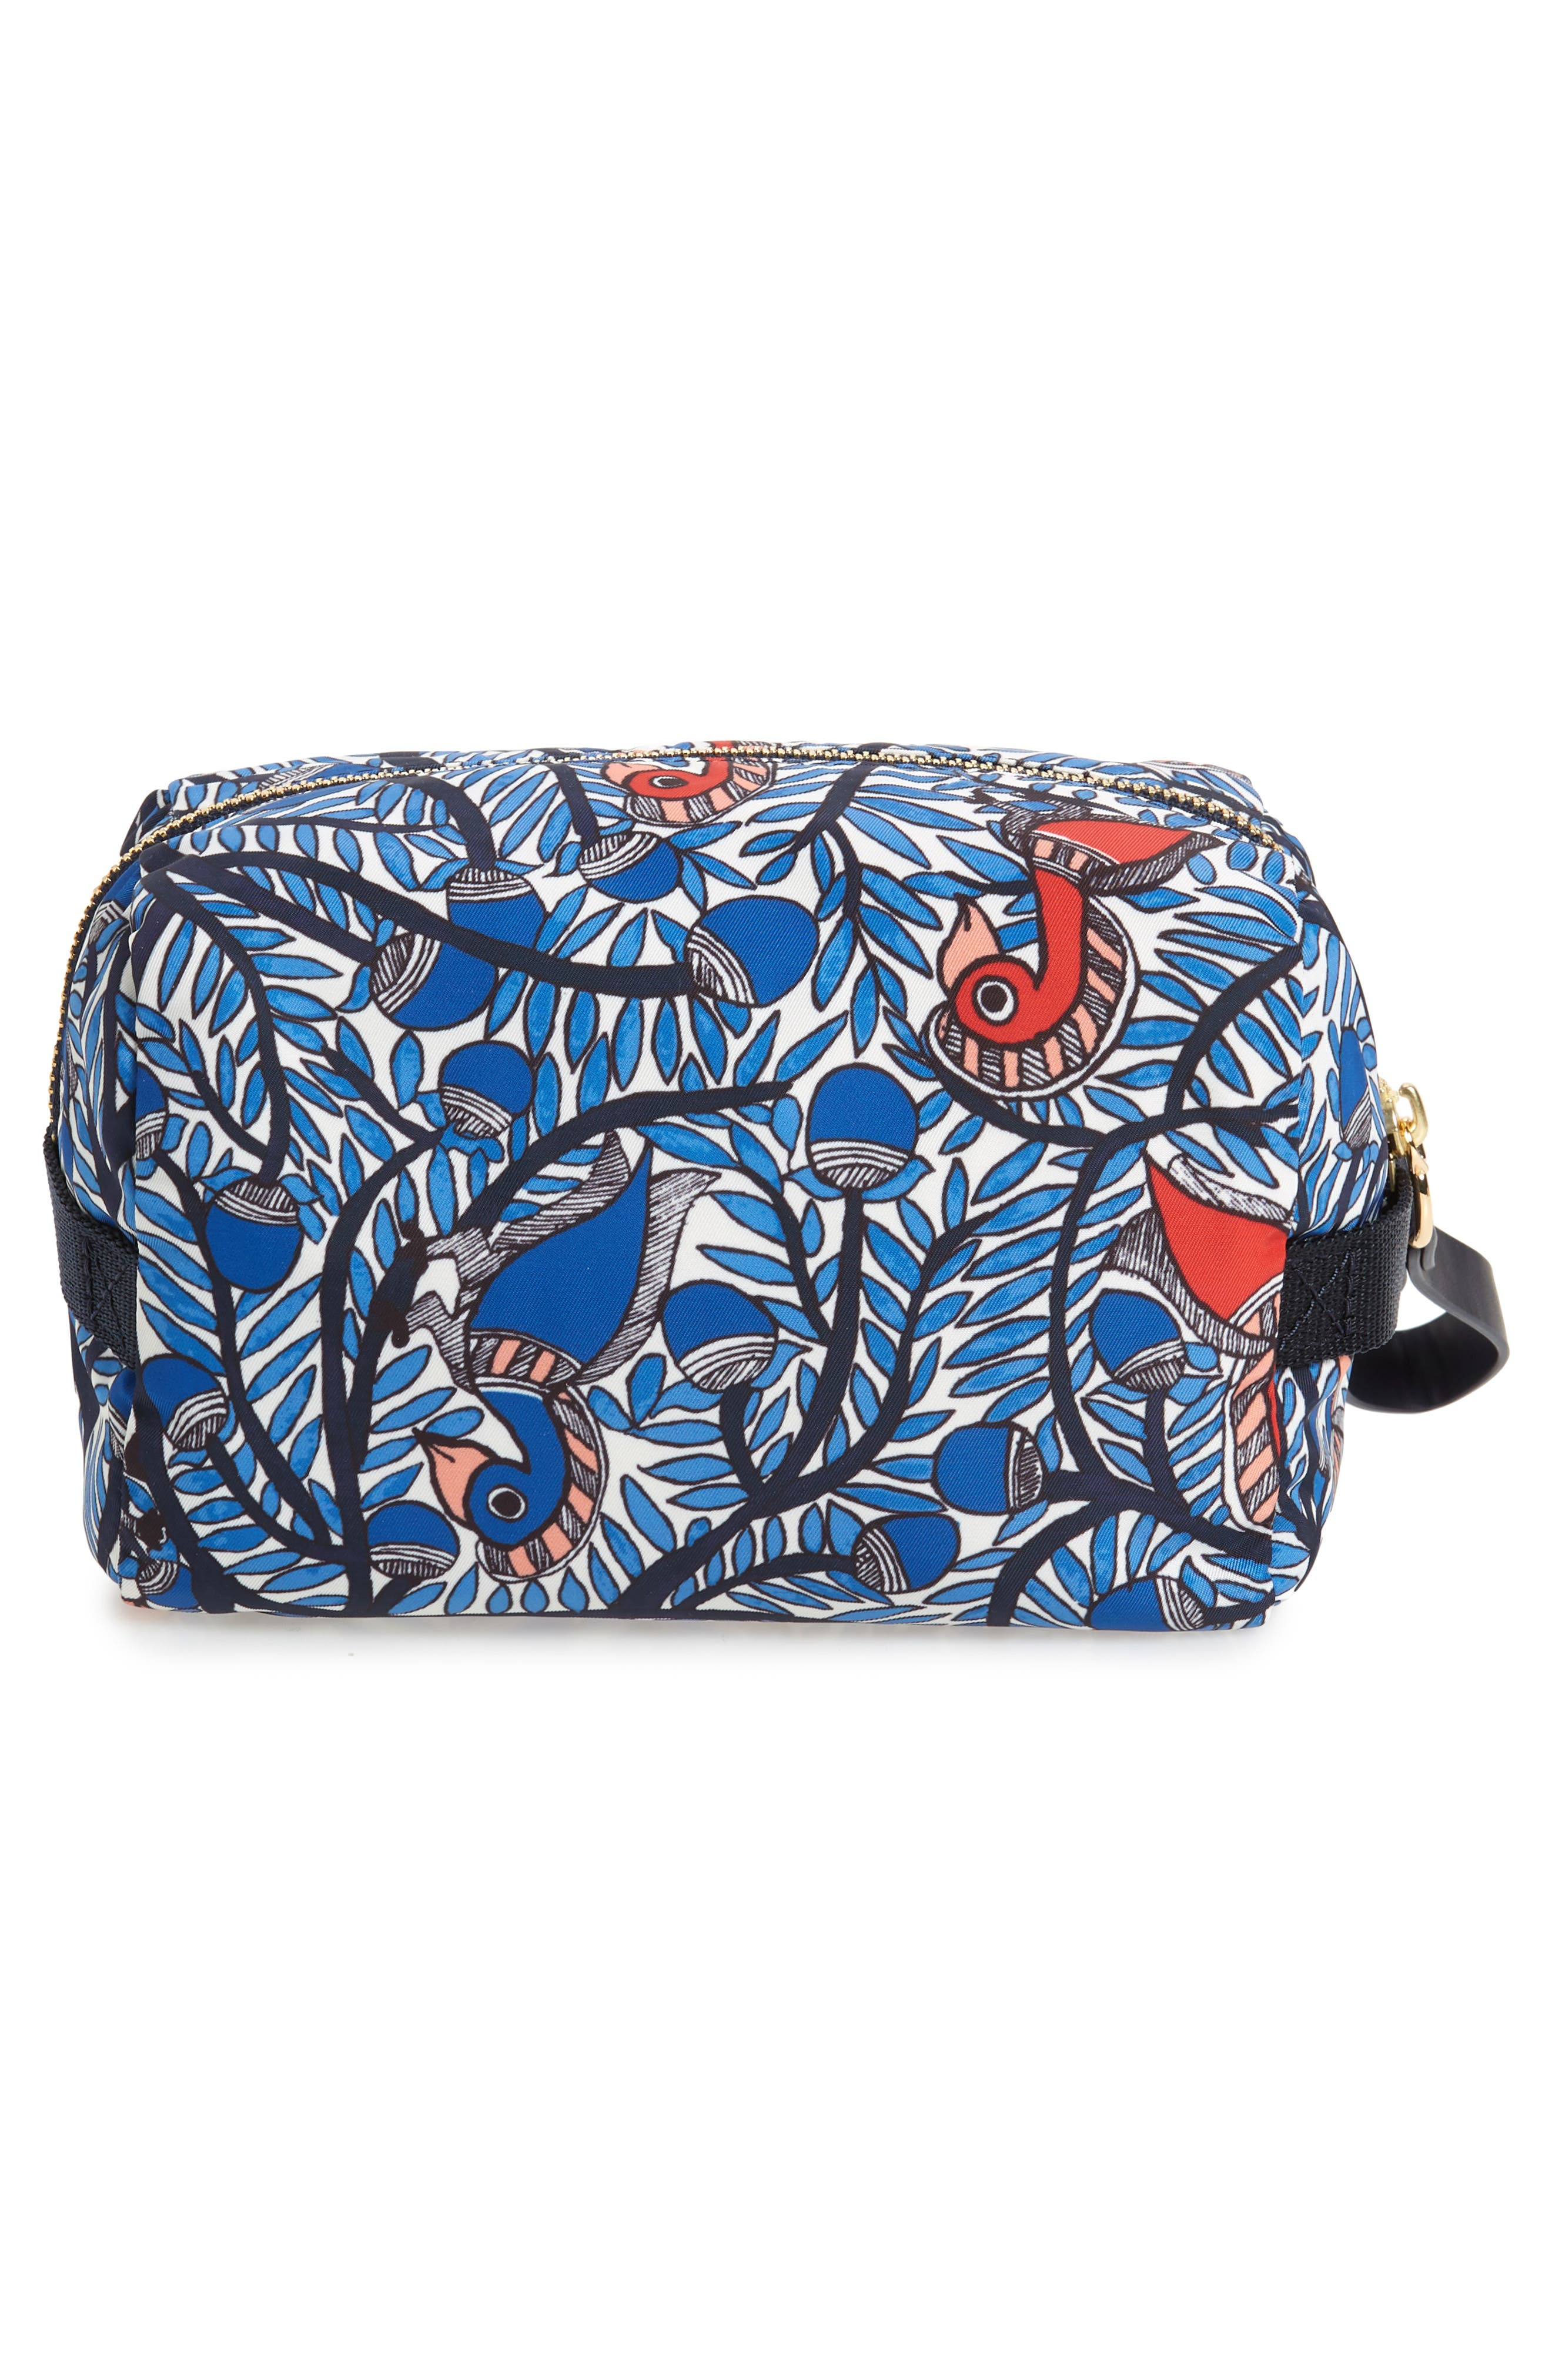 TORY BURCH,                             Medium Tilda Print Cosmetics Case,                             Alternate thumbnail 2, color,                             BLUE SOMETHING WILD